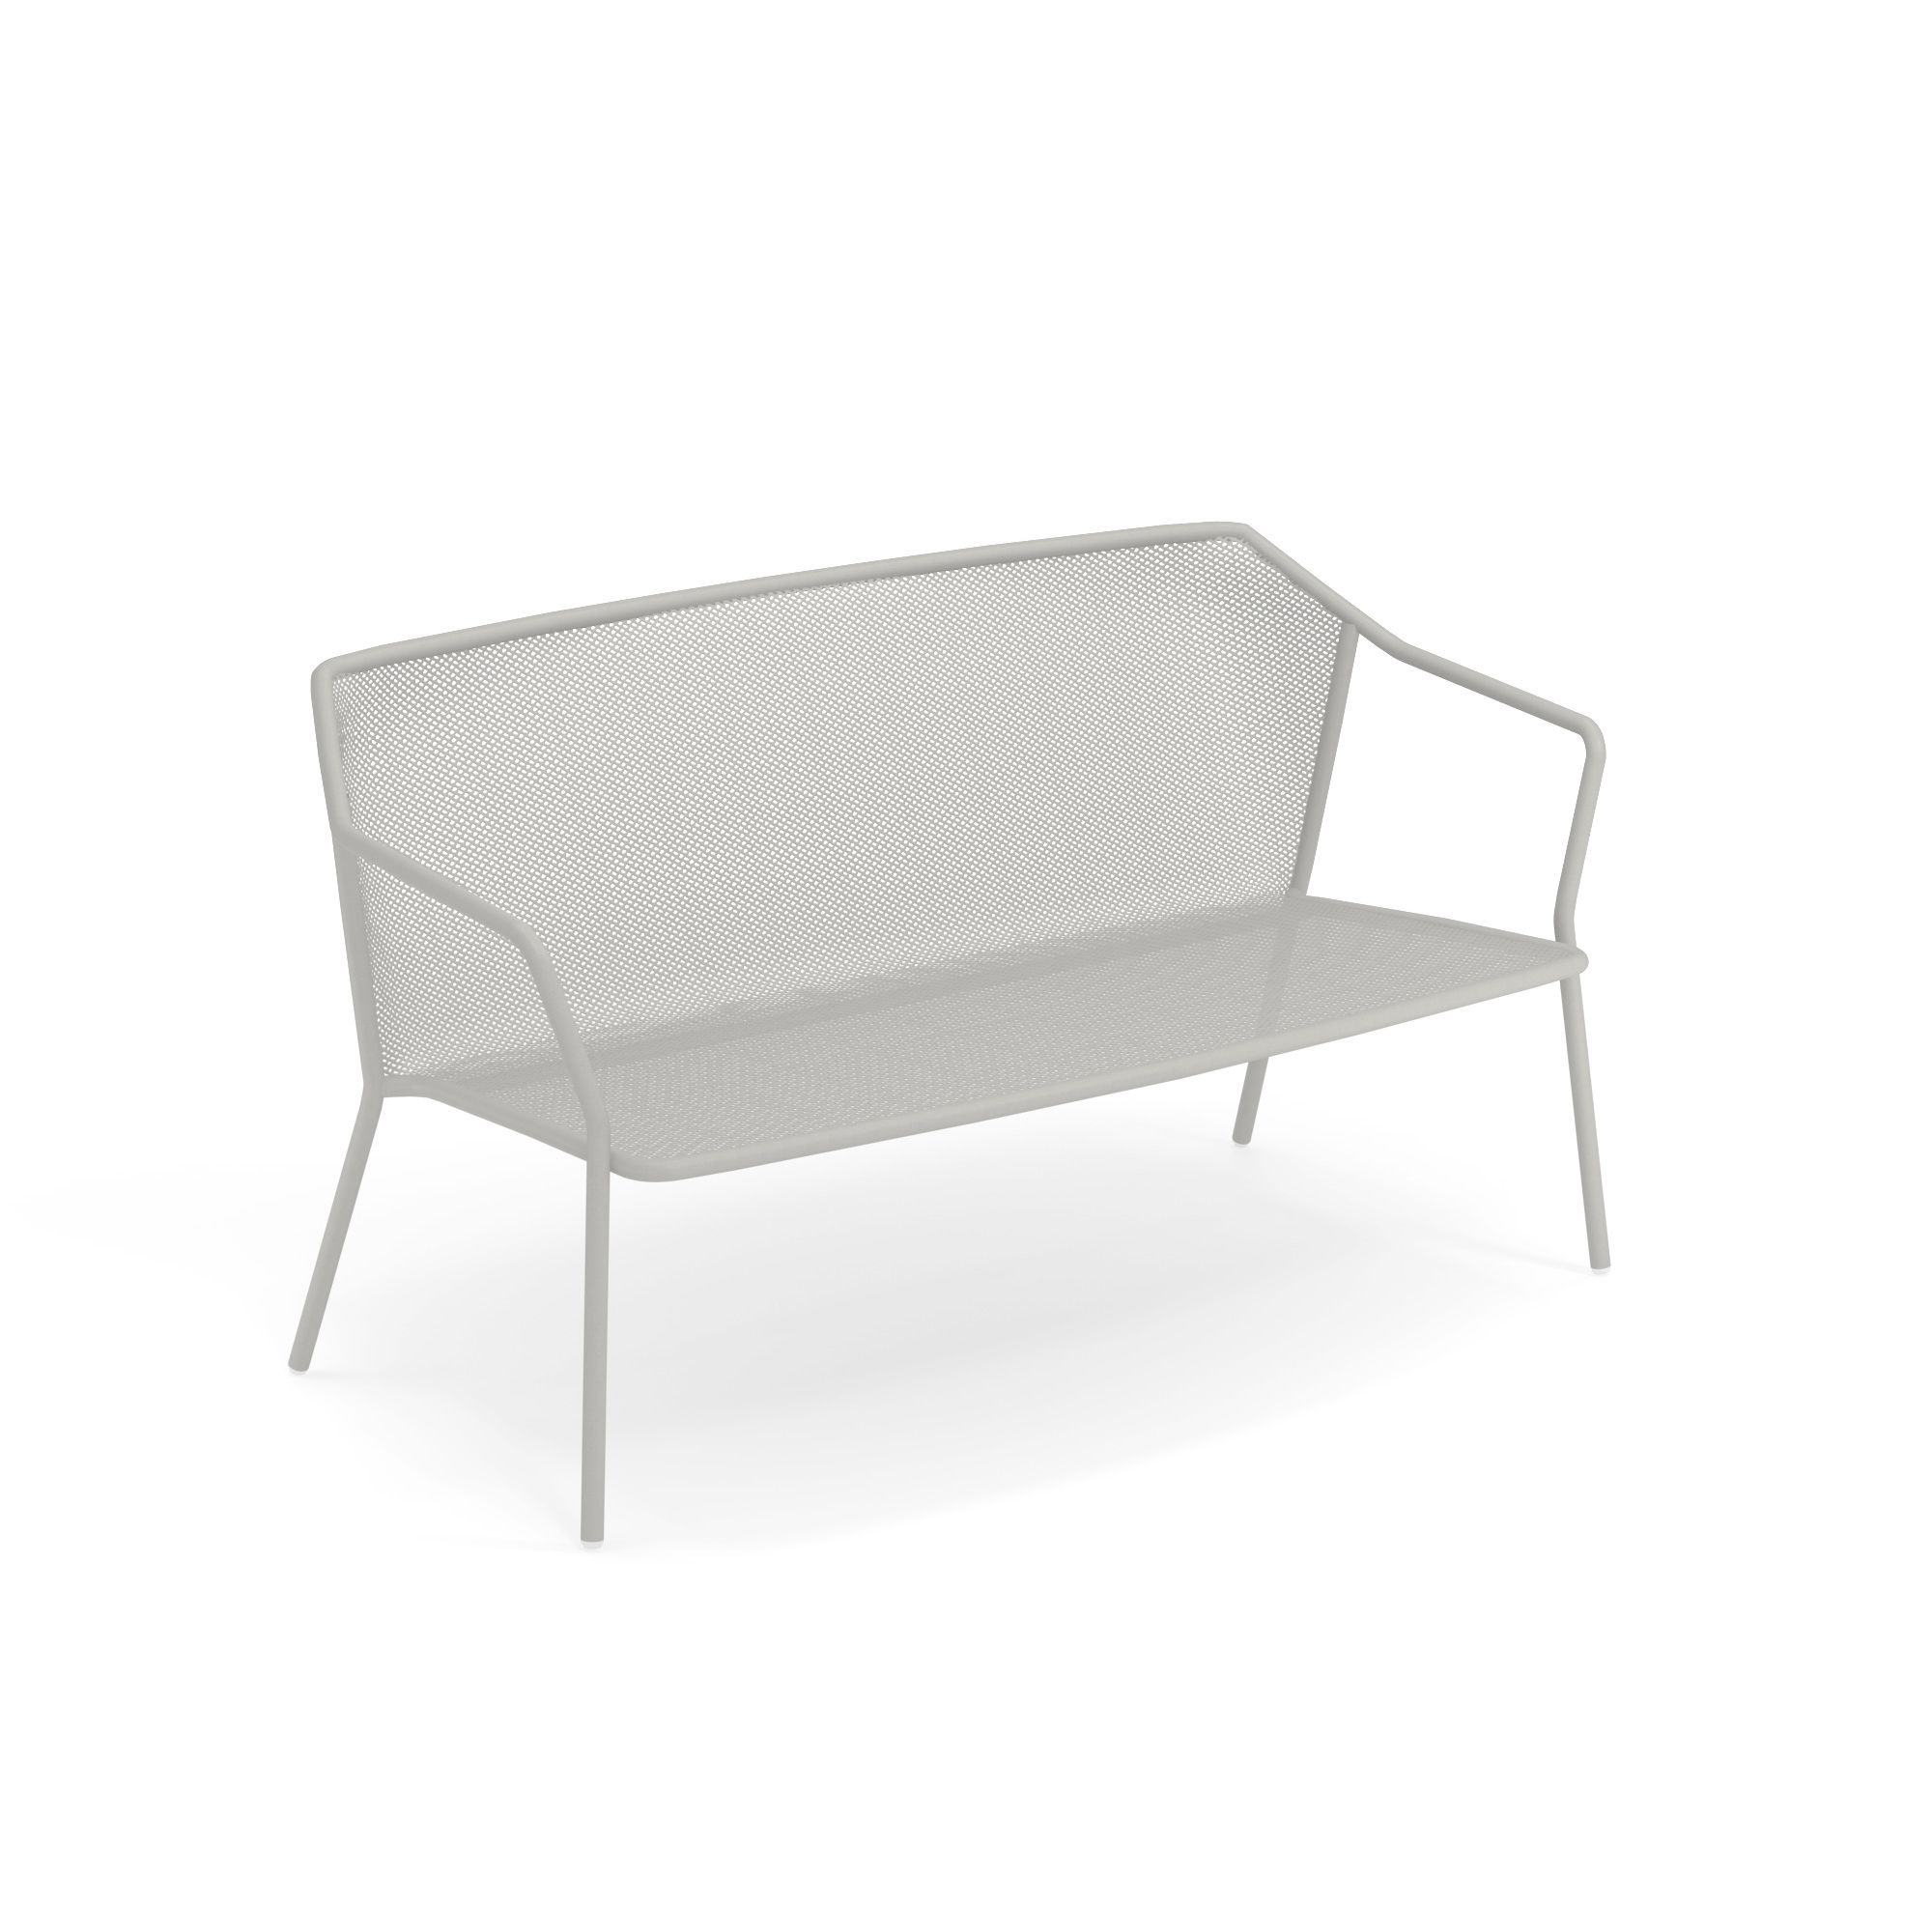 emuamericas, llc 527-73 sofa seating, outdoor